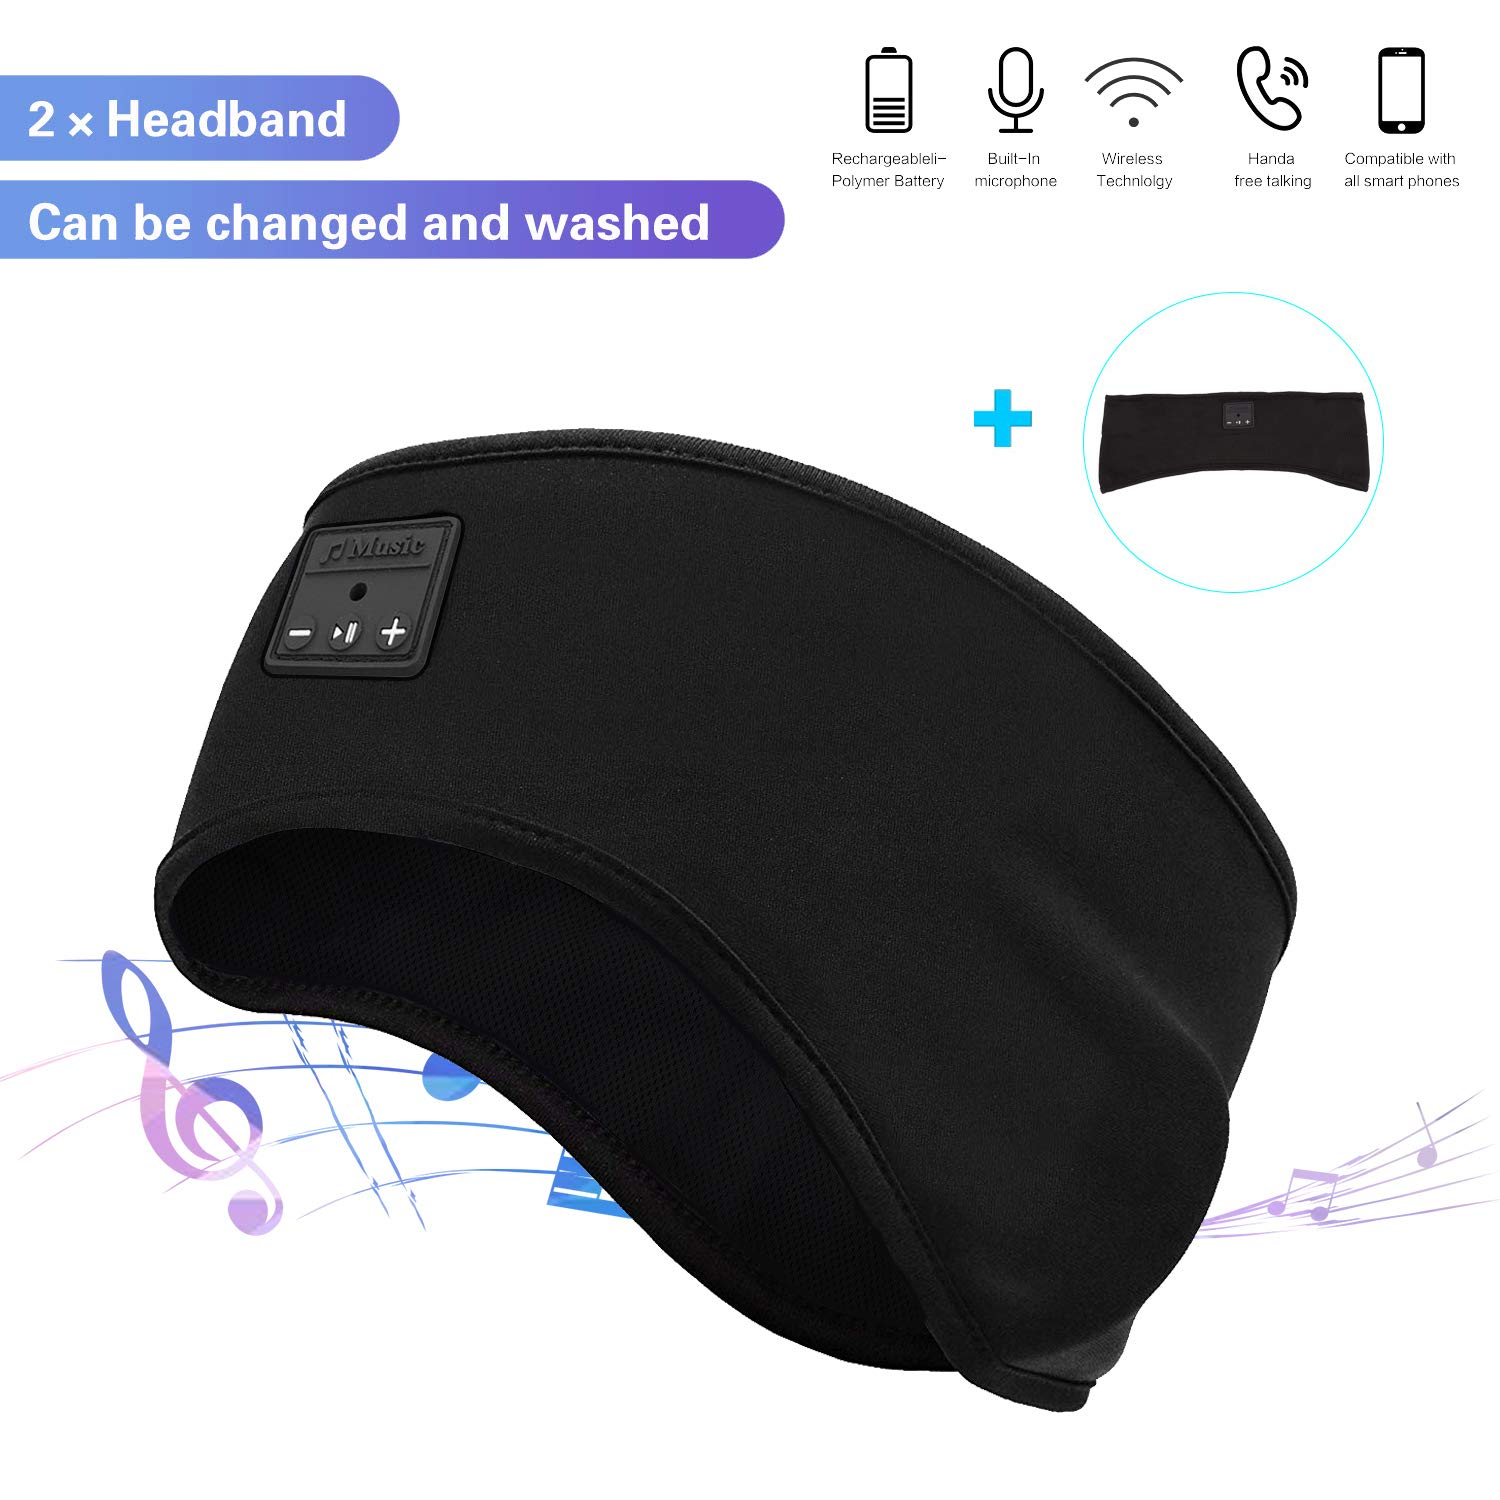 Manfiter Sleep Headphones, Sports Sleep Headband 2 in 1 Sports Sweatband Wireless Bluetooth V5.0 Noise Cancelling Headband Headphones with Ultra-Thin HD Stereo Speakers for Jogging,Yoga,Side Sleepers